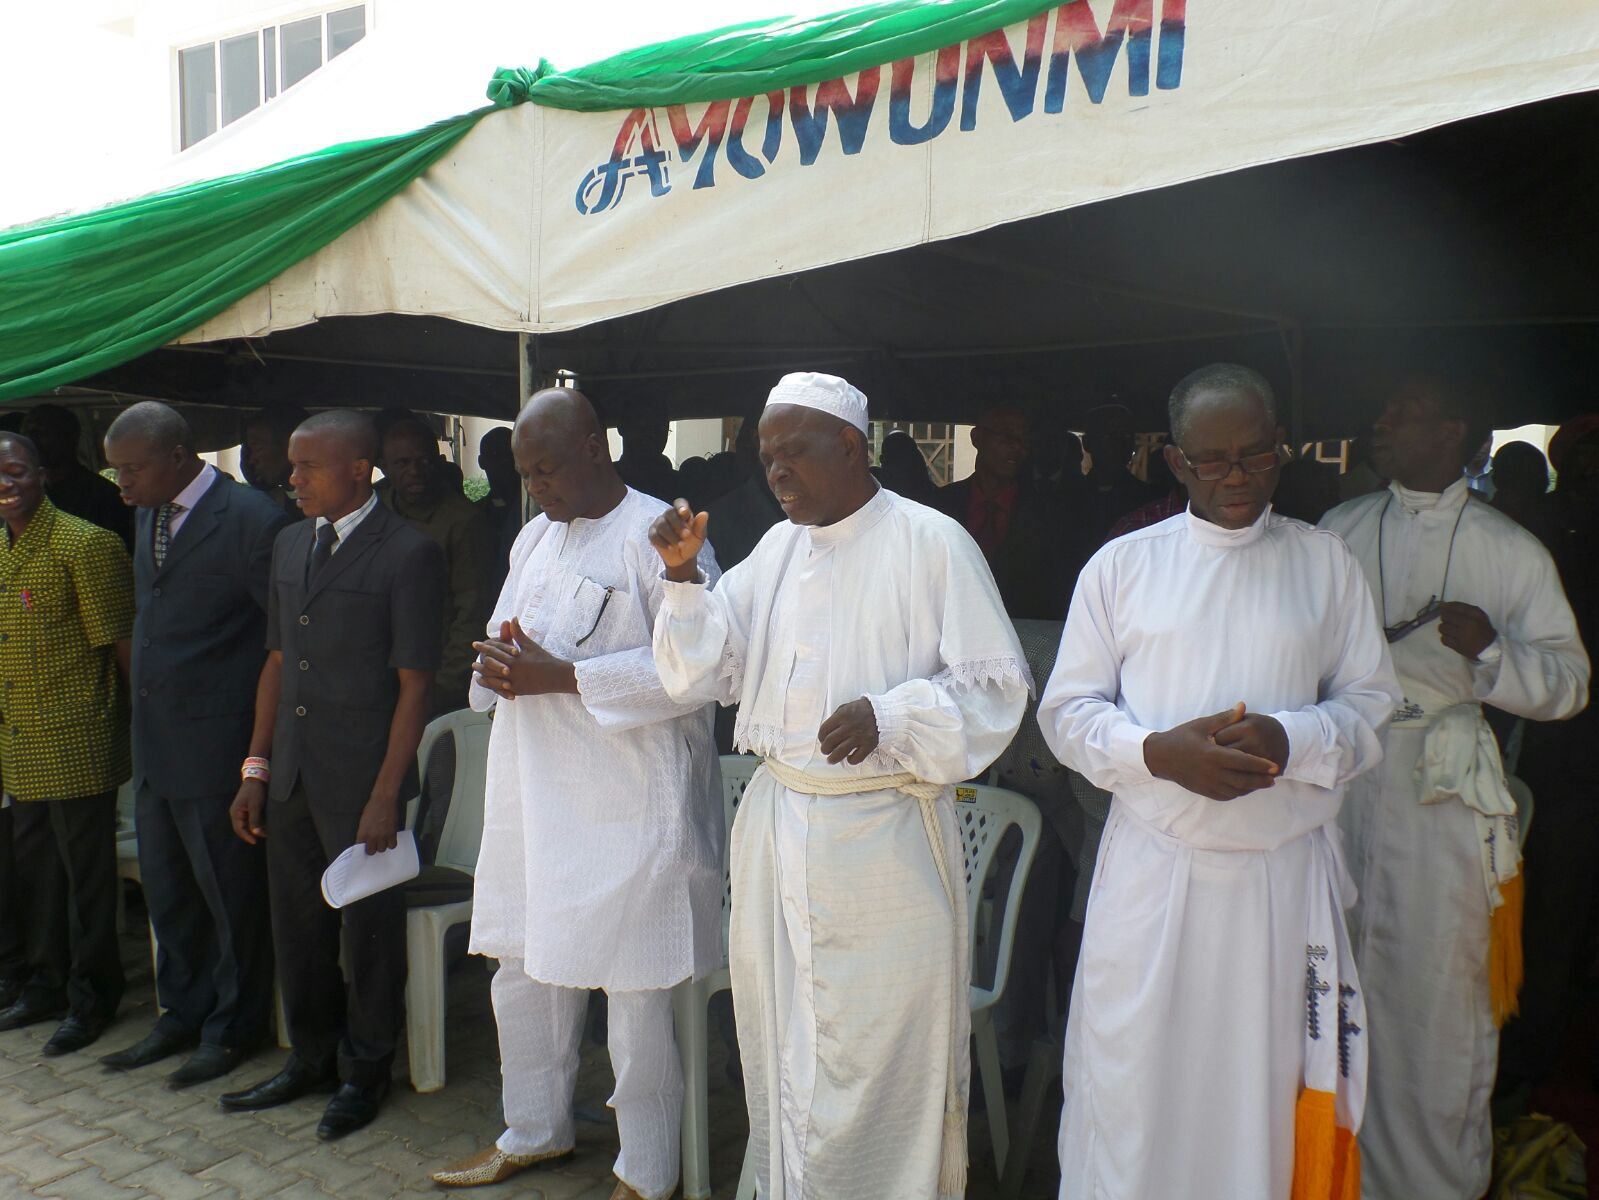 Governor Ayodele Fayose of Ekiti State holds prayer meeting with clergymen in Ado Ekiti, December 22, 2015 | Ekiti Gov't Photo